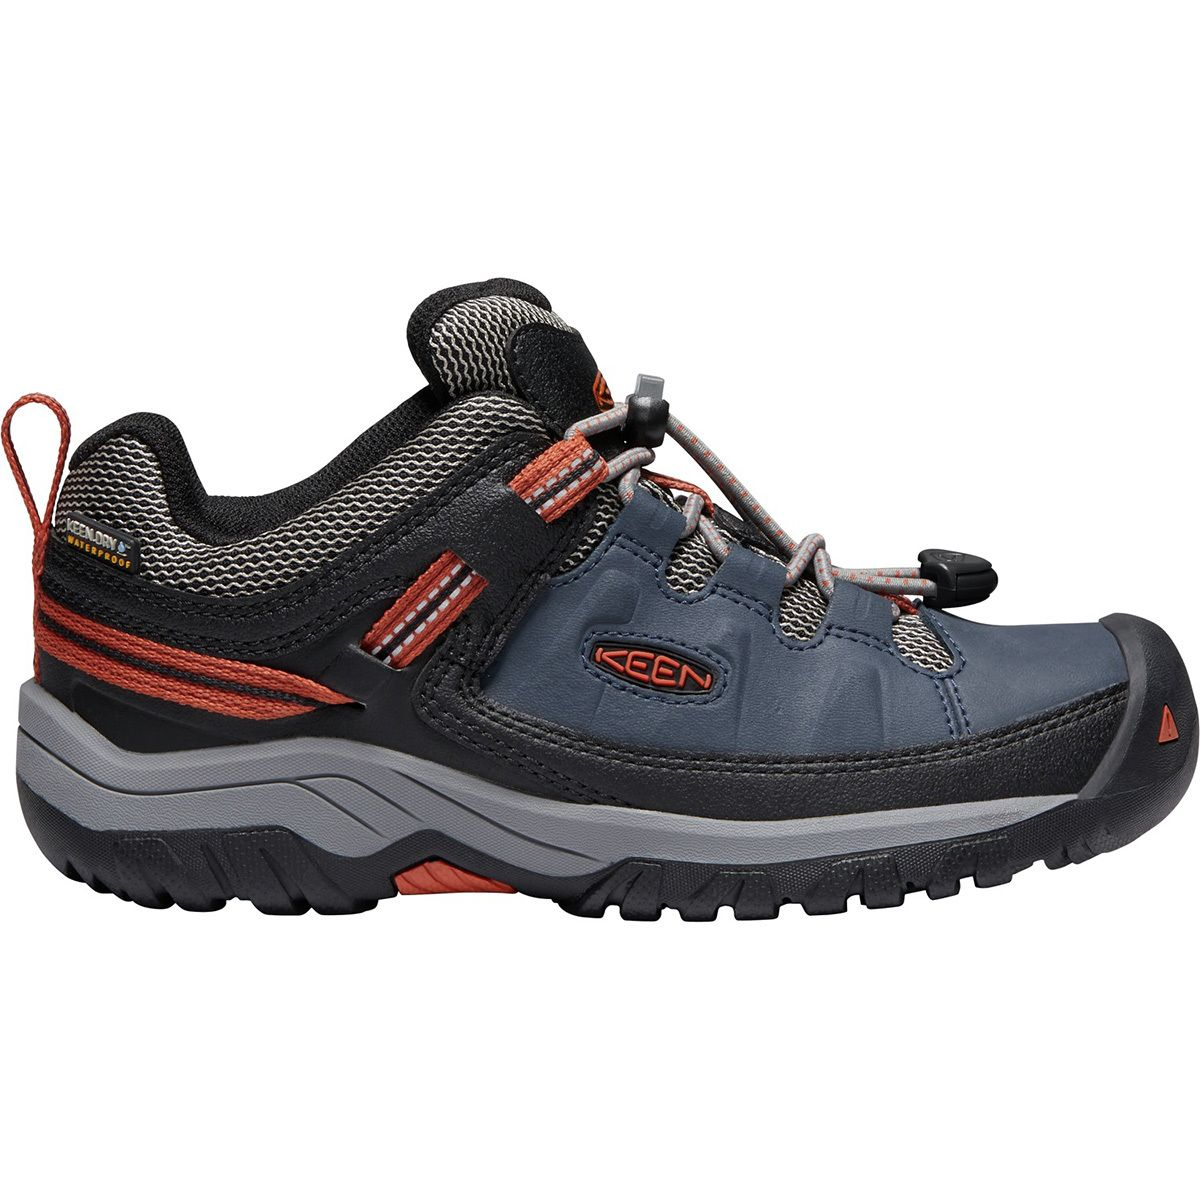 Keen Targhee Waterproof